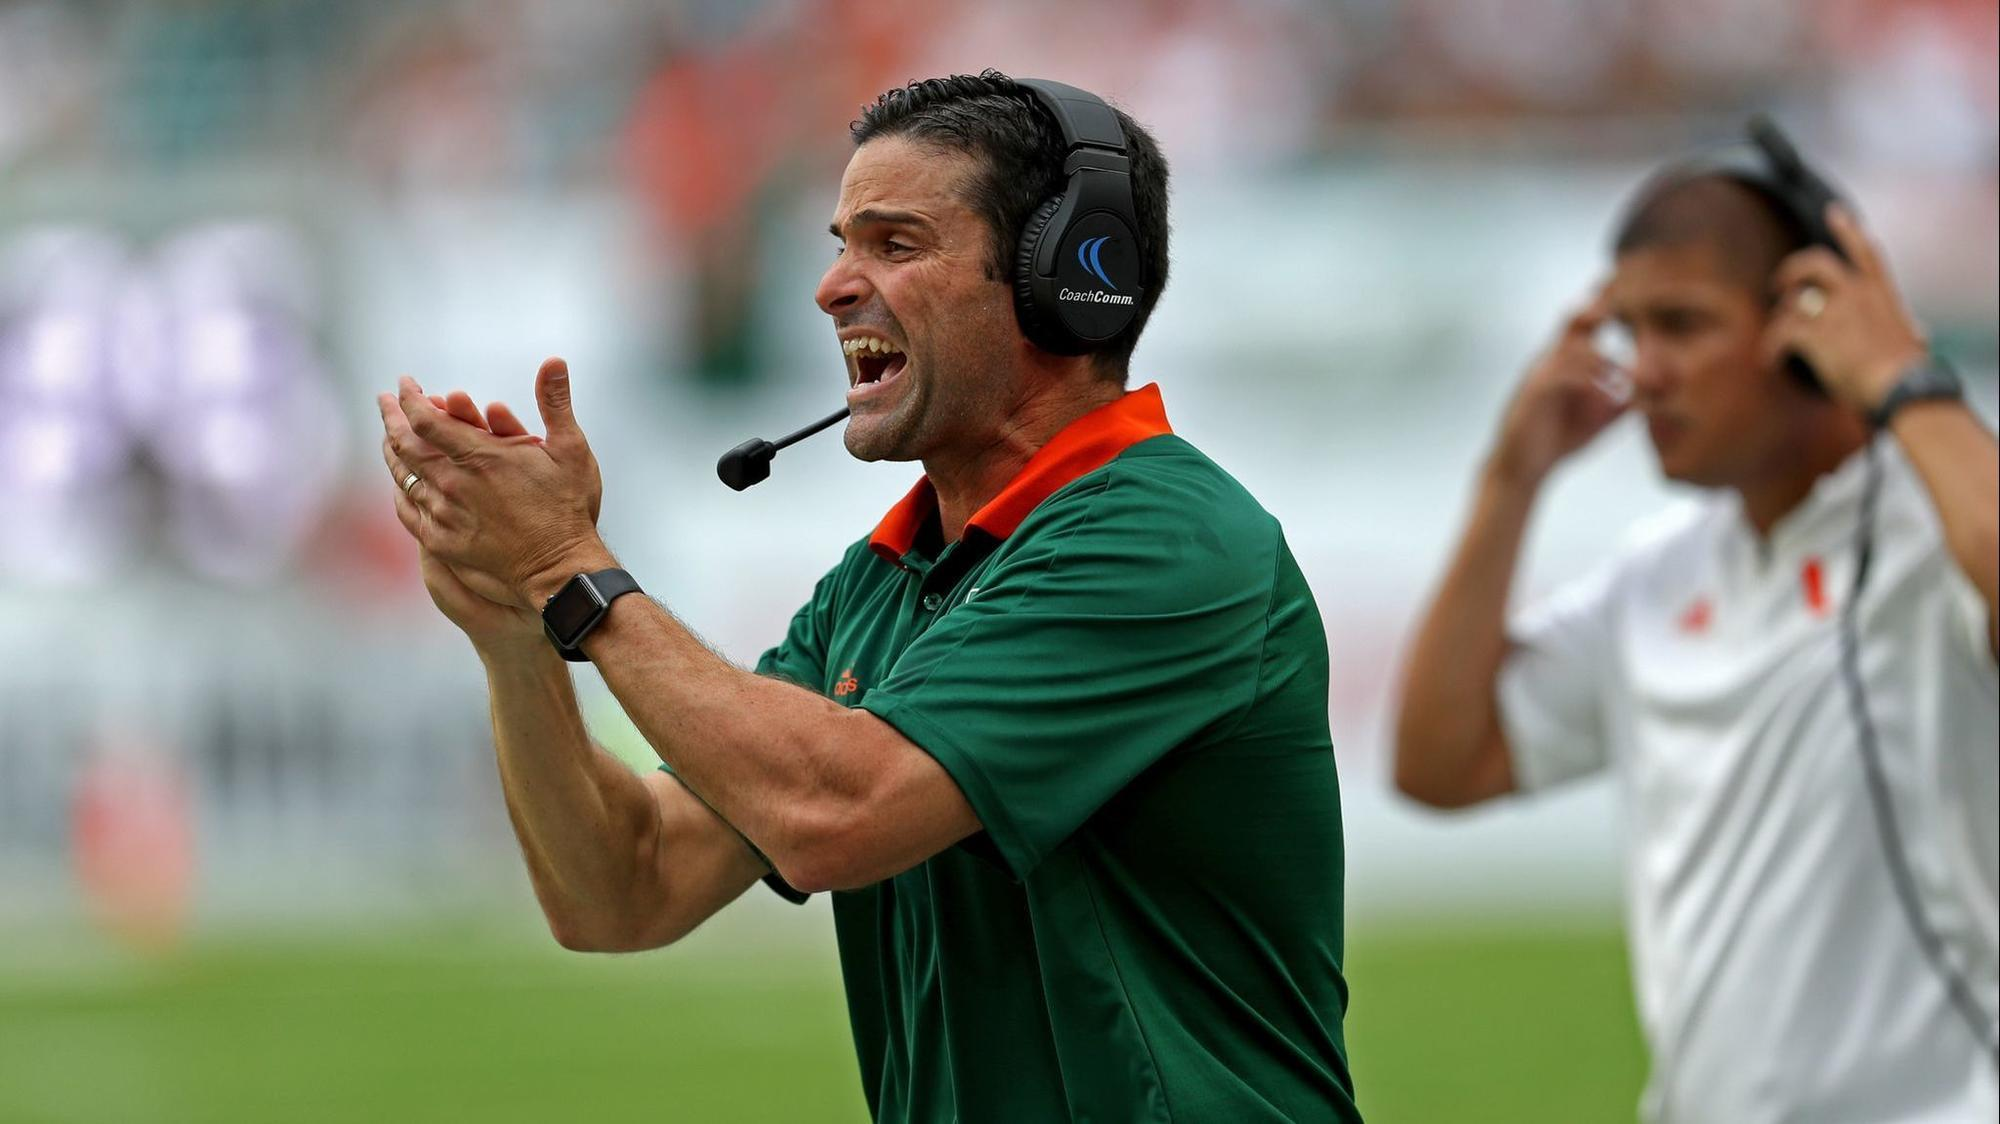 new hurricanes coach manny diaz on taking over after mark richt s